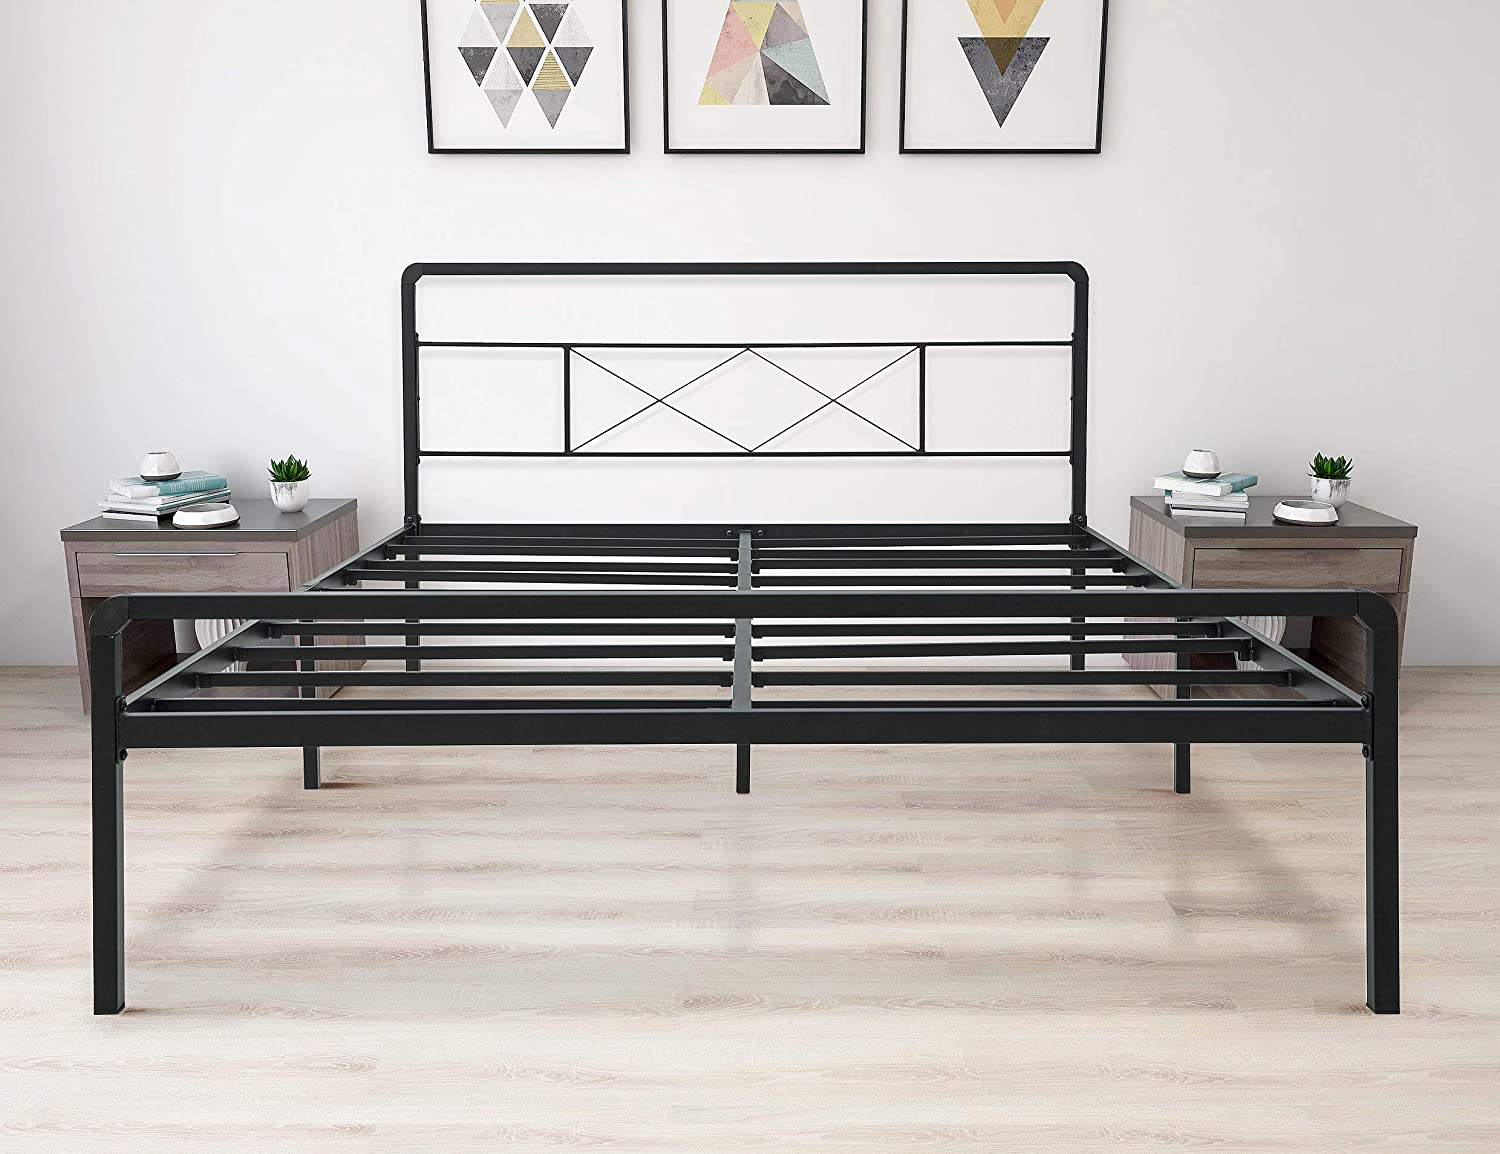 zizin King Metal Platform Bed Frame with Headboard and Footboard Heavy Duty Steel Slat Support Mattress Foundation Easy Assembly Noise-Free Anti-Slip